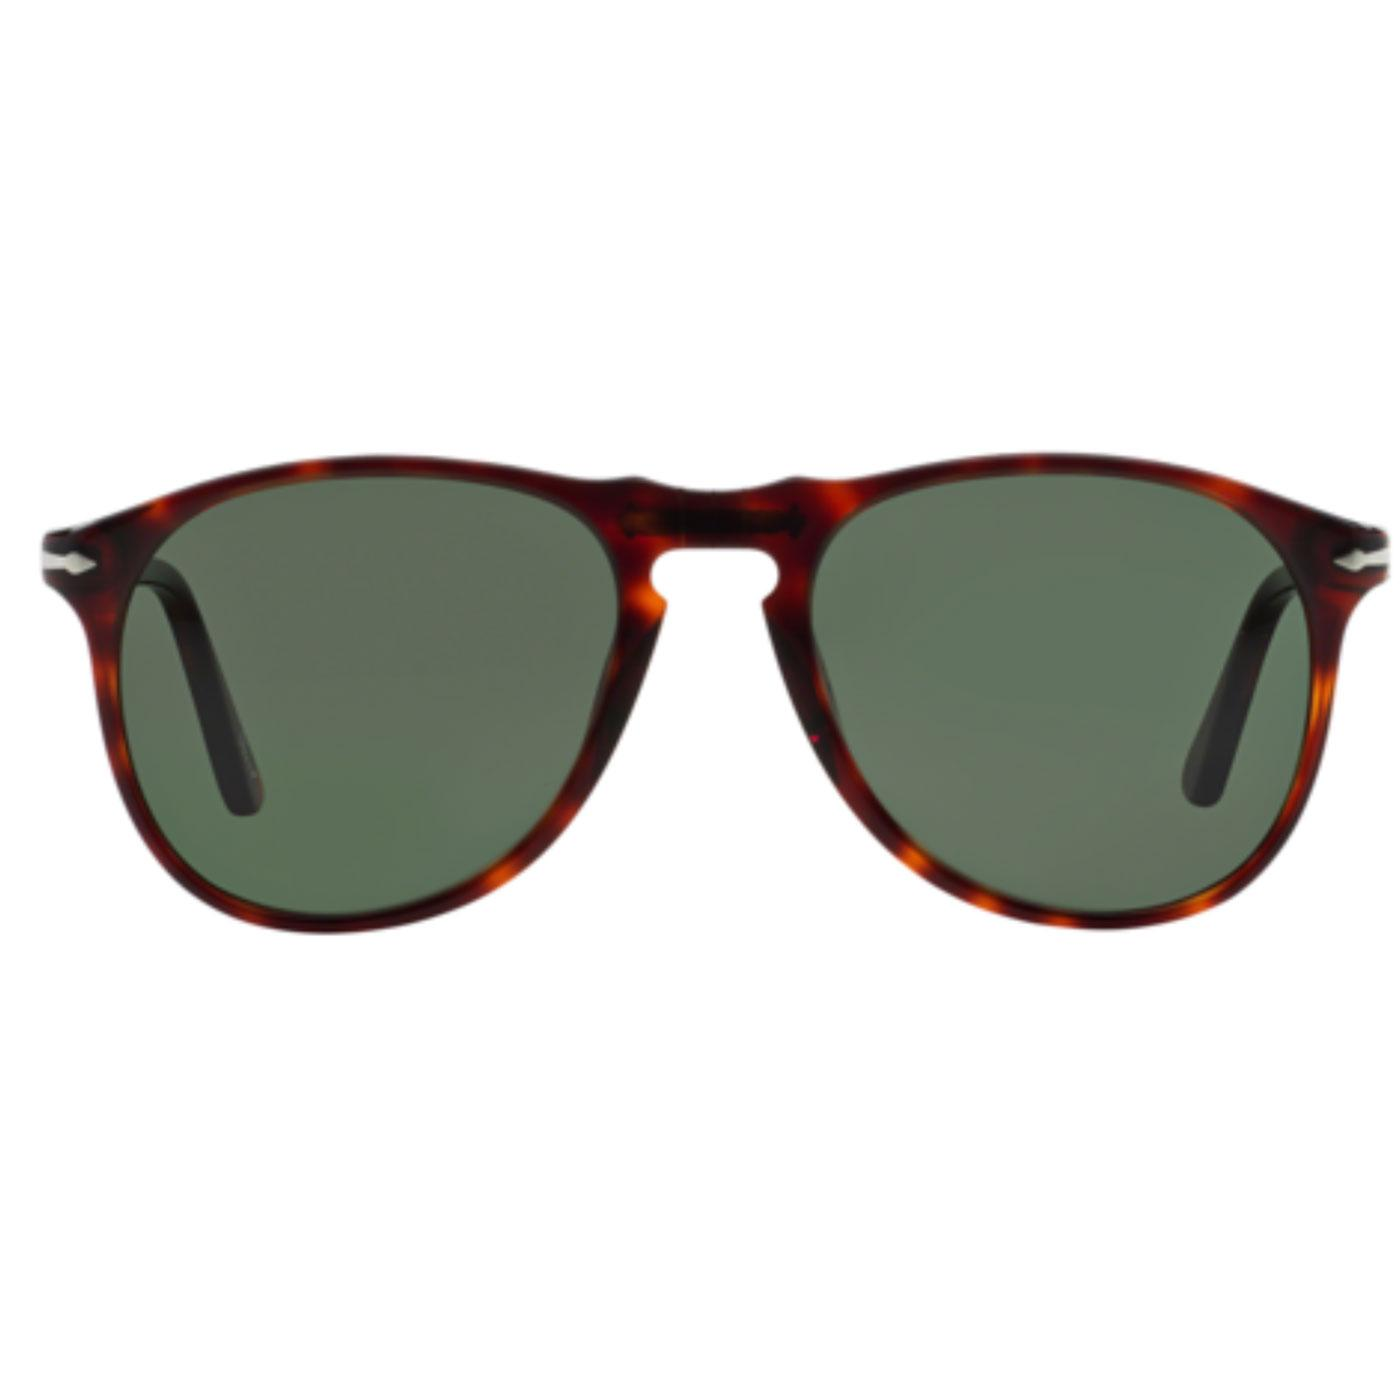 649 Series PERSOL Original Mod Sunglasses HAVANA